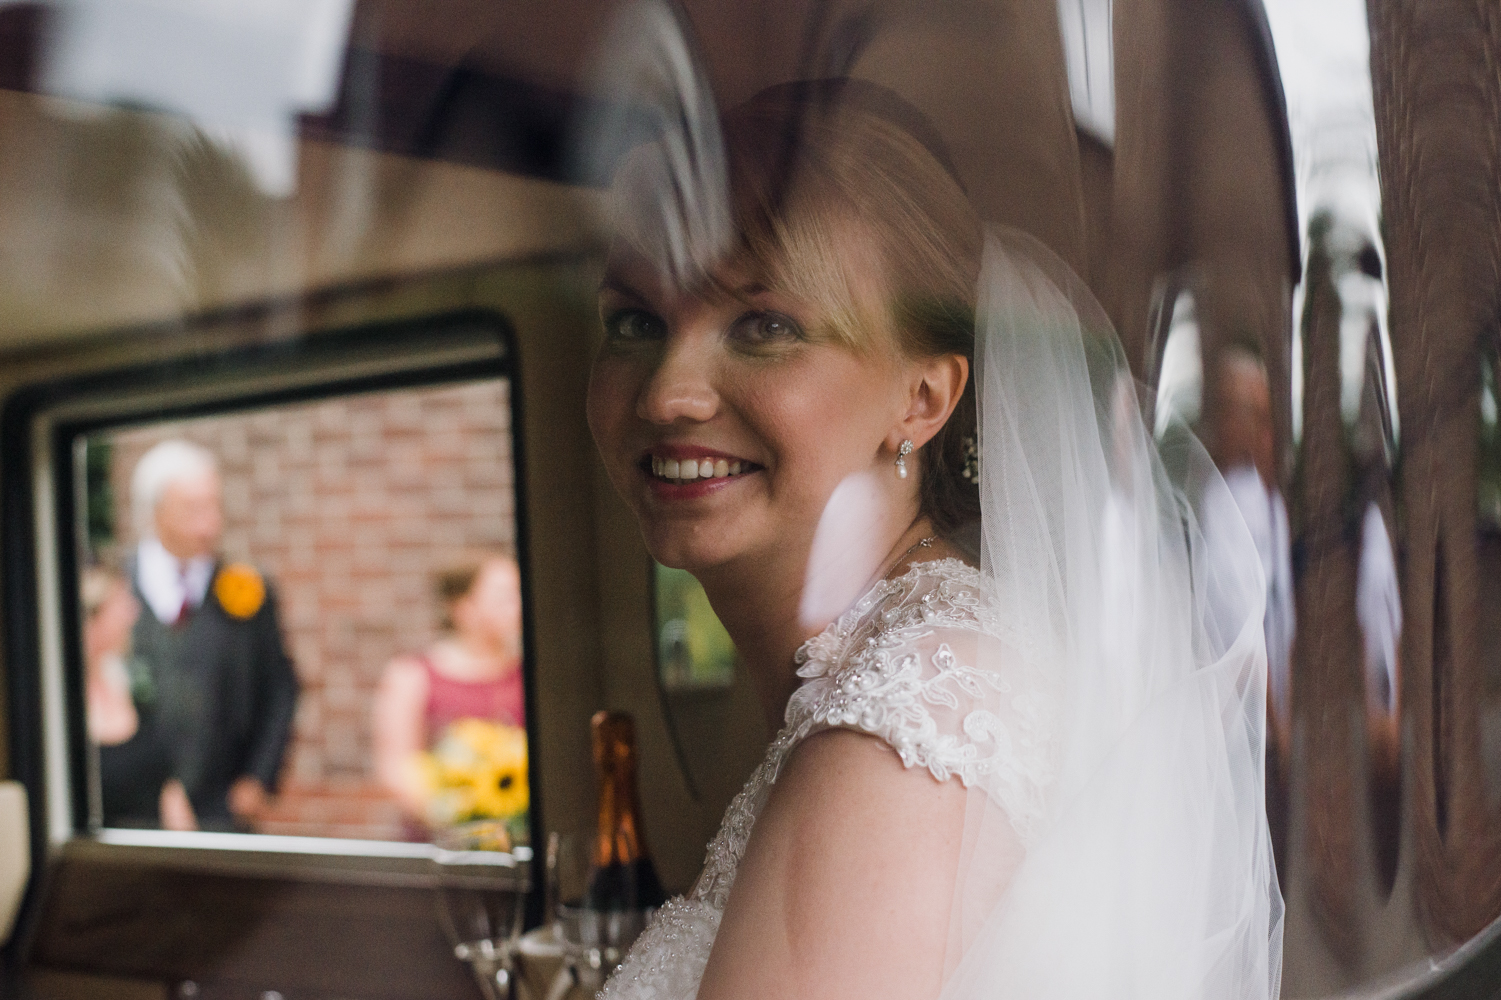 The bride sitting in the back of the car as she arrives at church